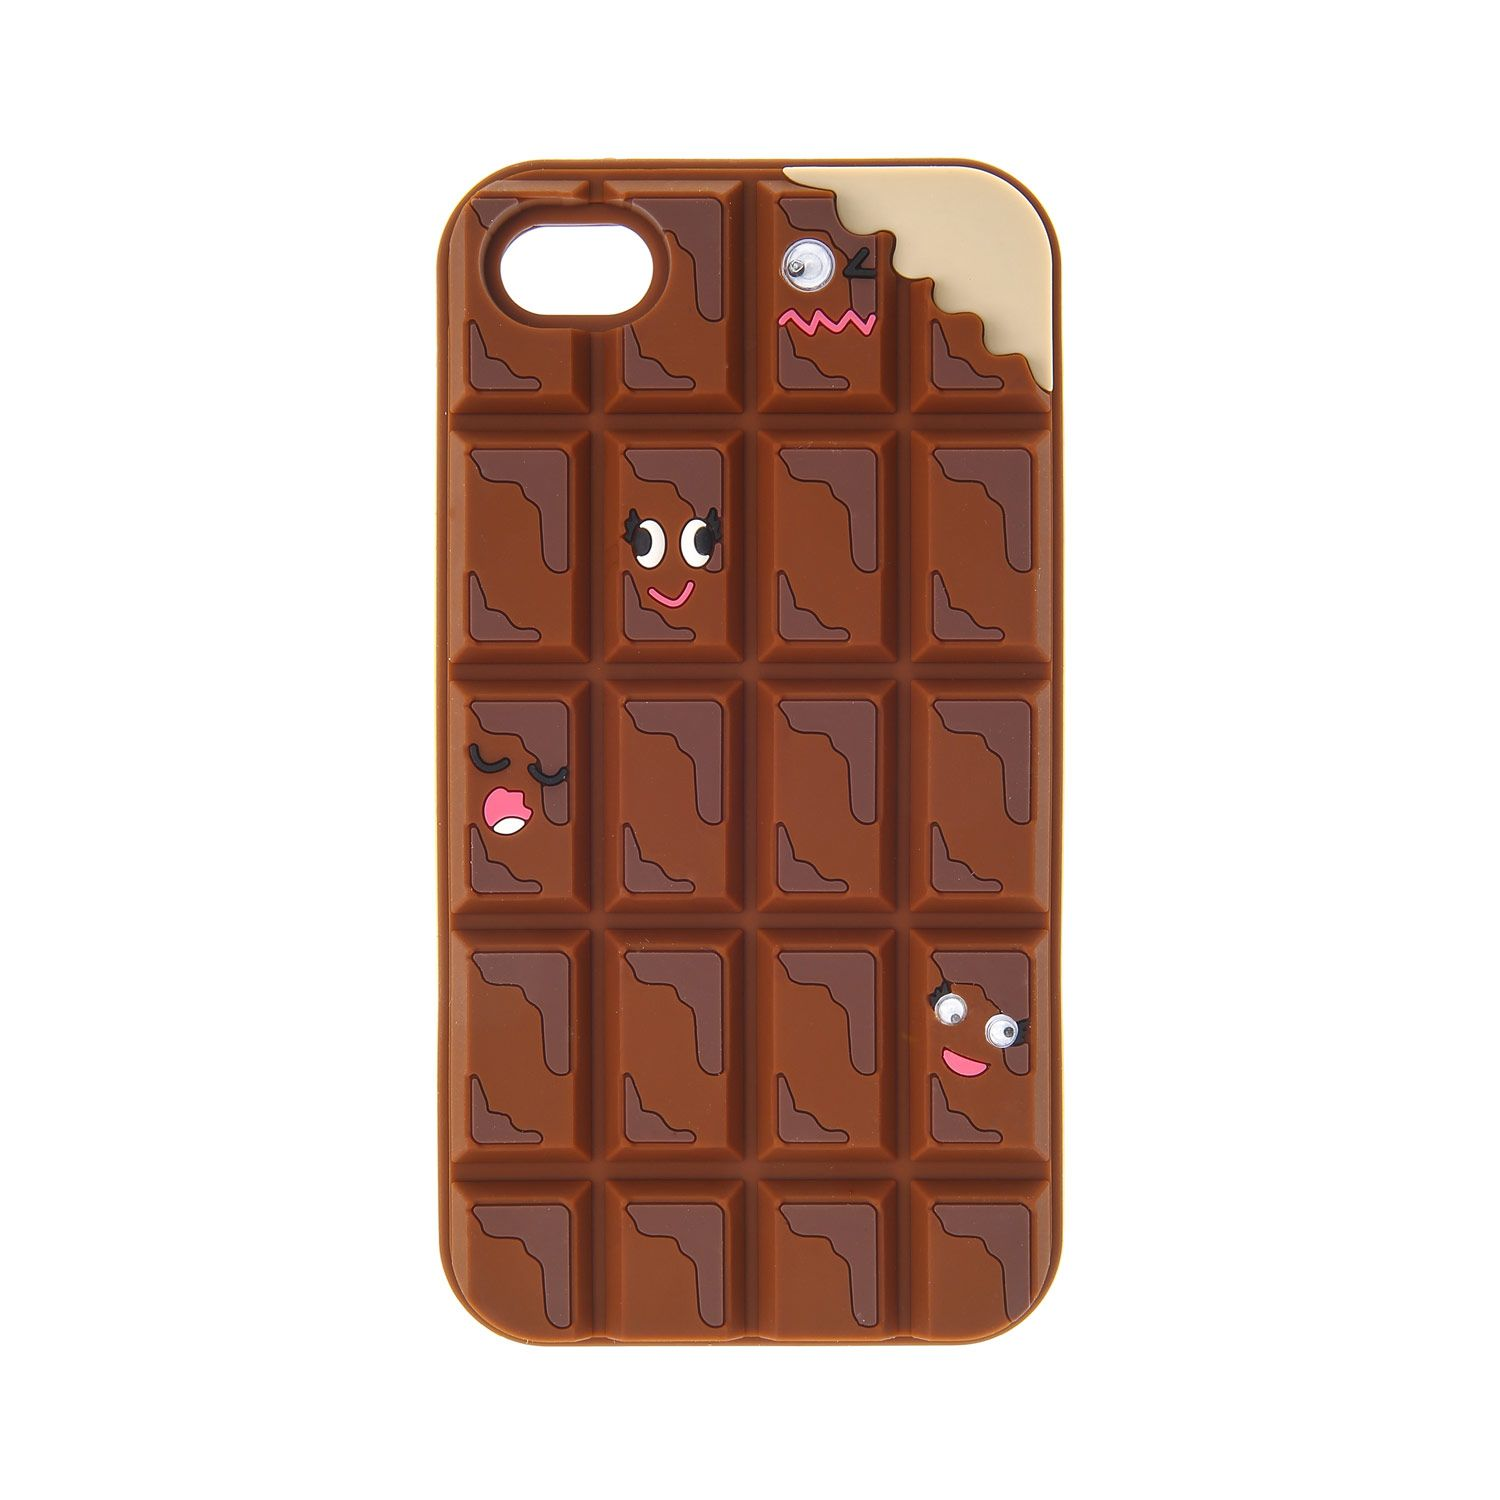 coque tablette de chocolat iphone 6